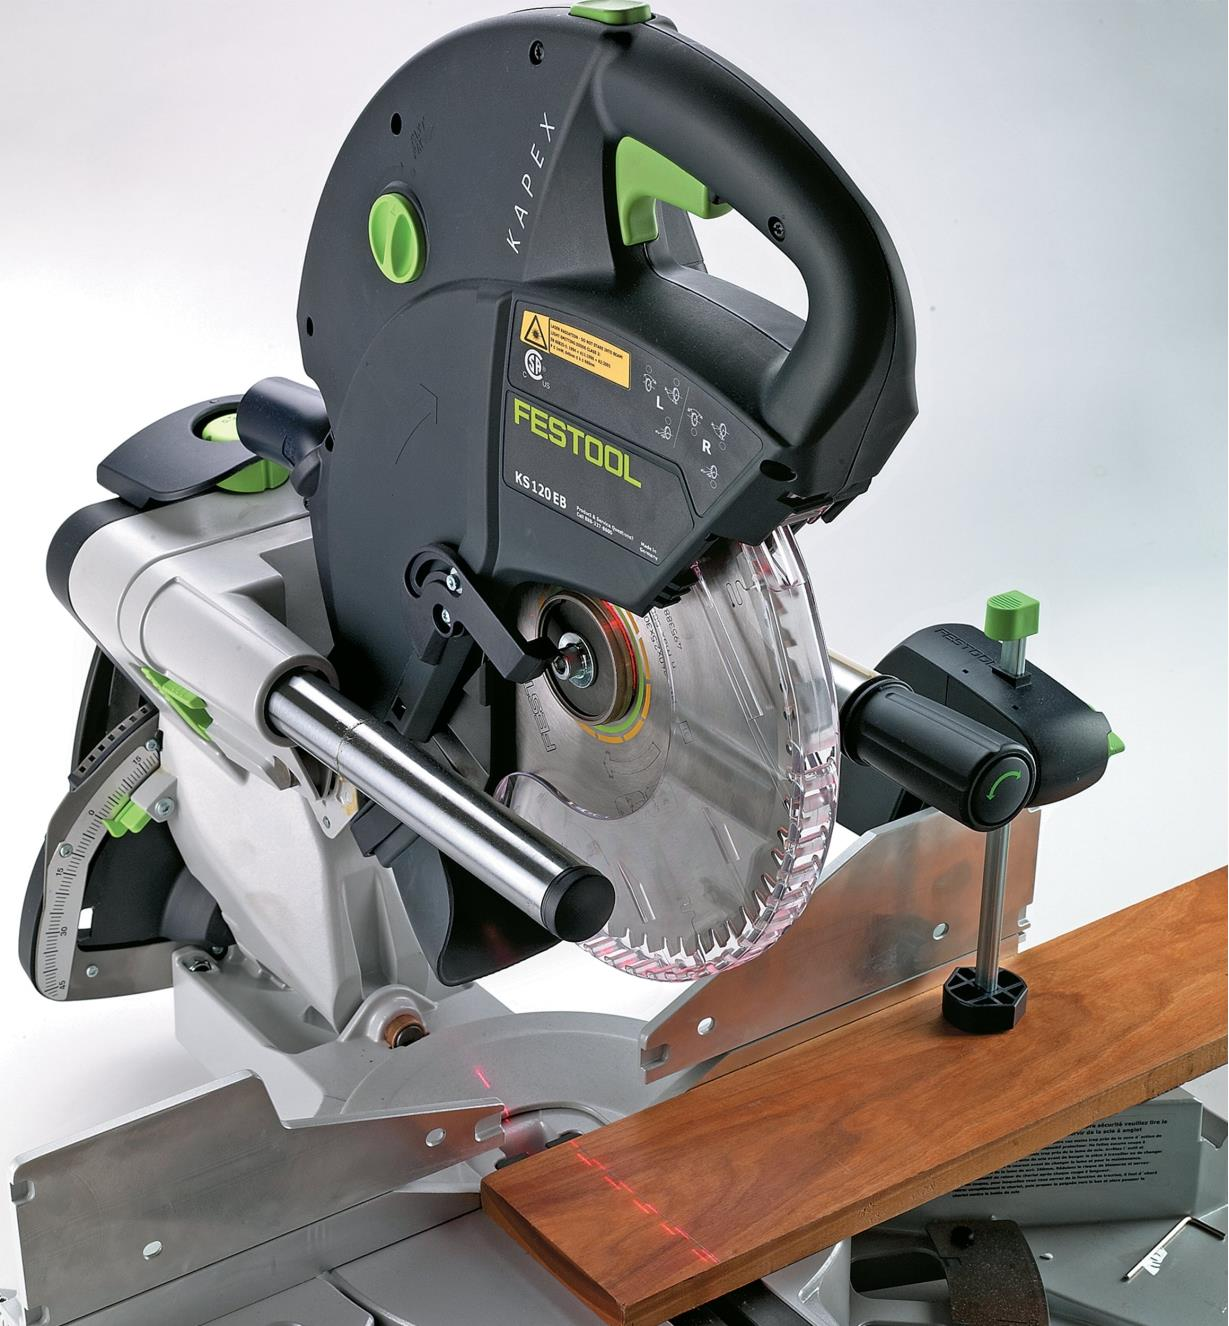 ZT561287 - Kapex KS 120 Elegant Brass Sliding Compound Miter Saw